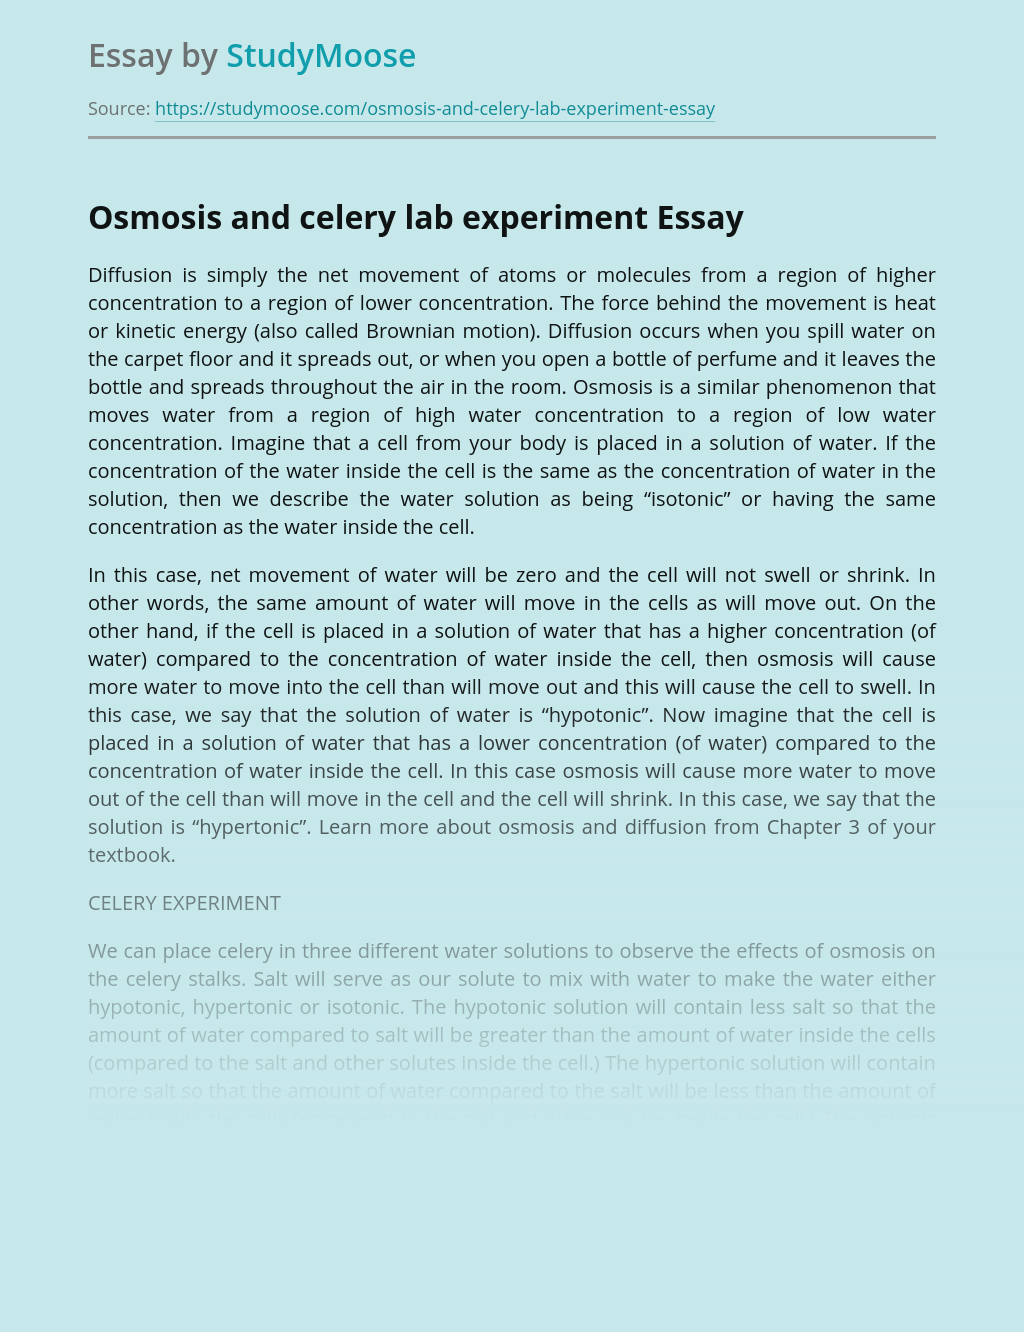 Osmosis and celery lab experiment